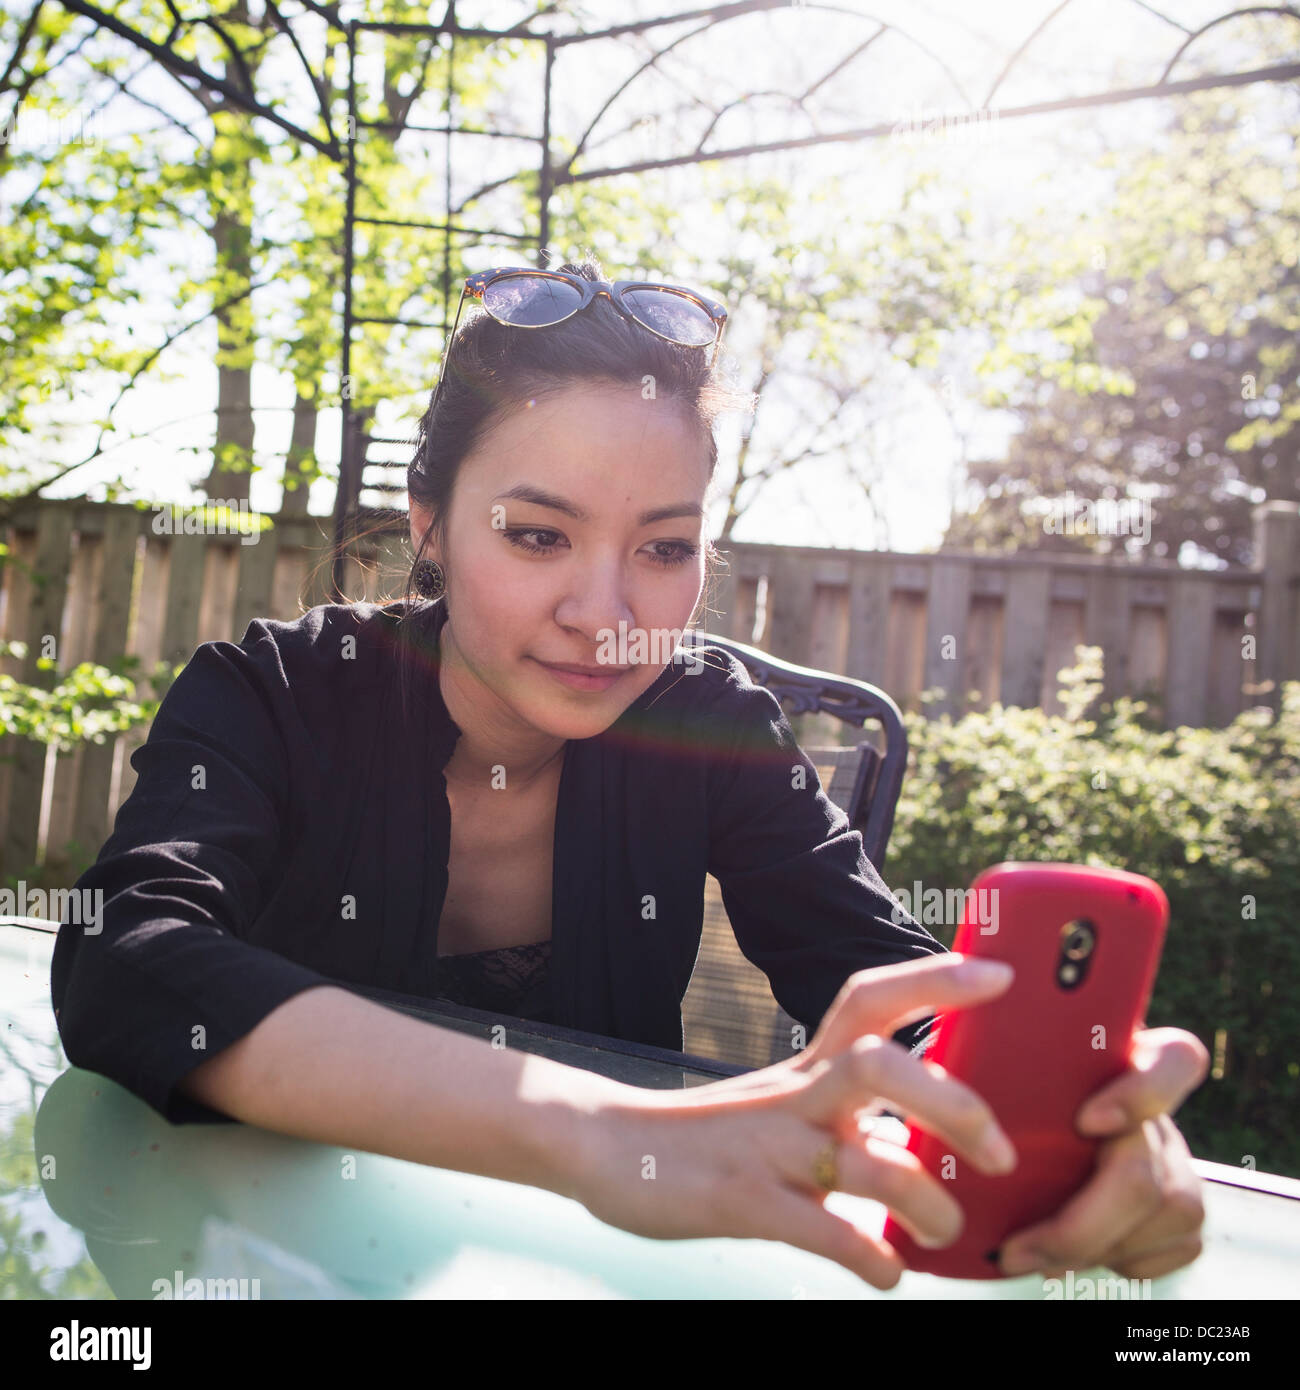 Young woman using red mobile phone outdoors - Stock Image